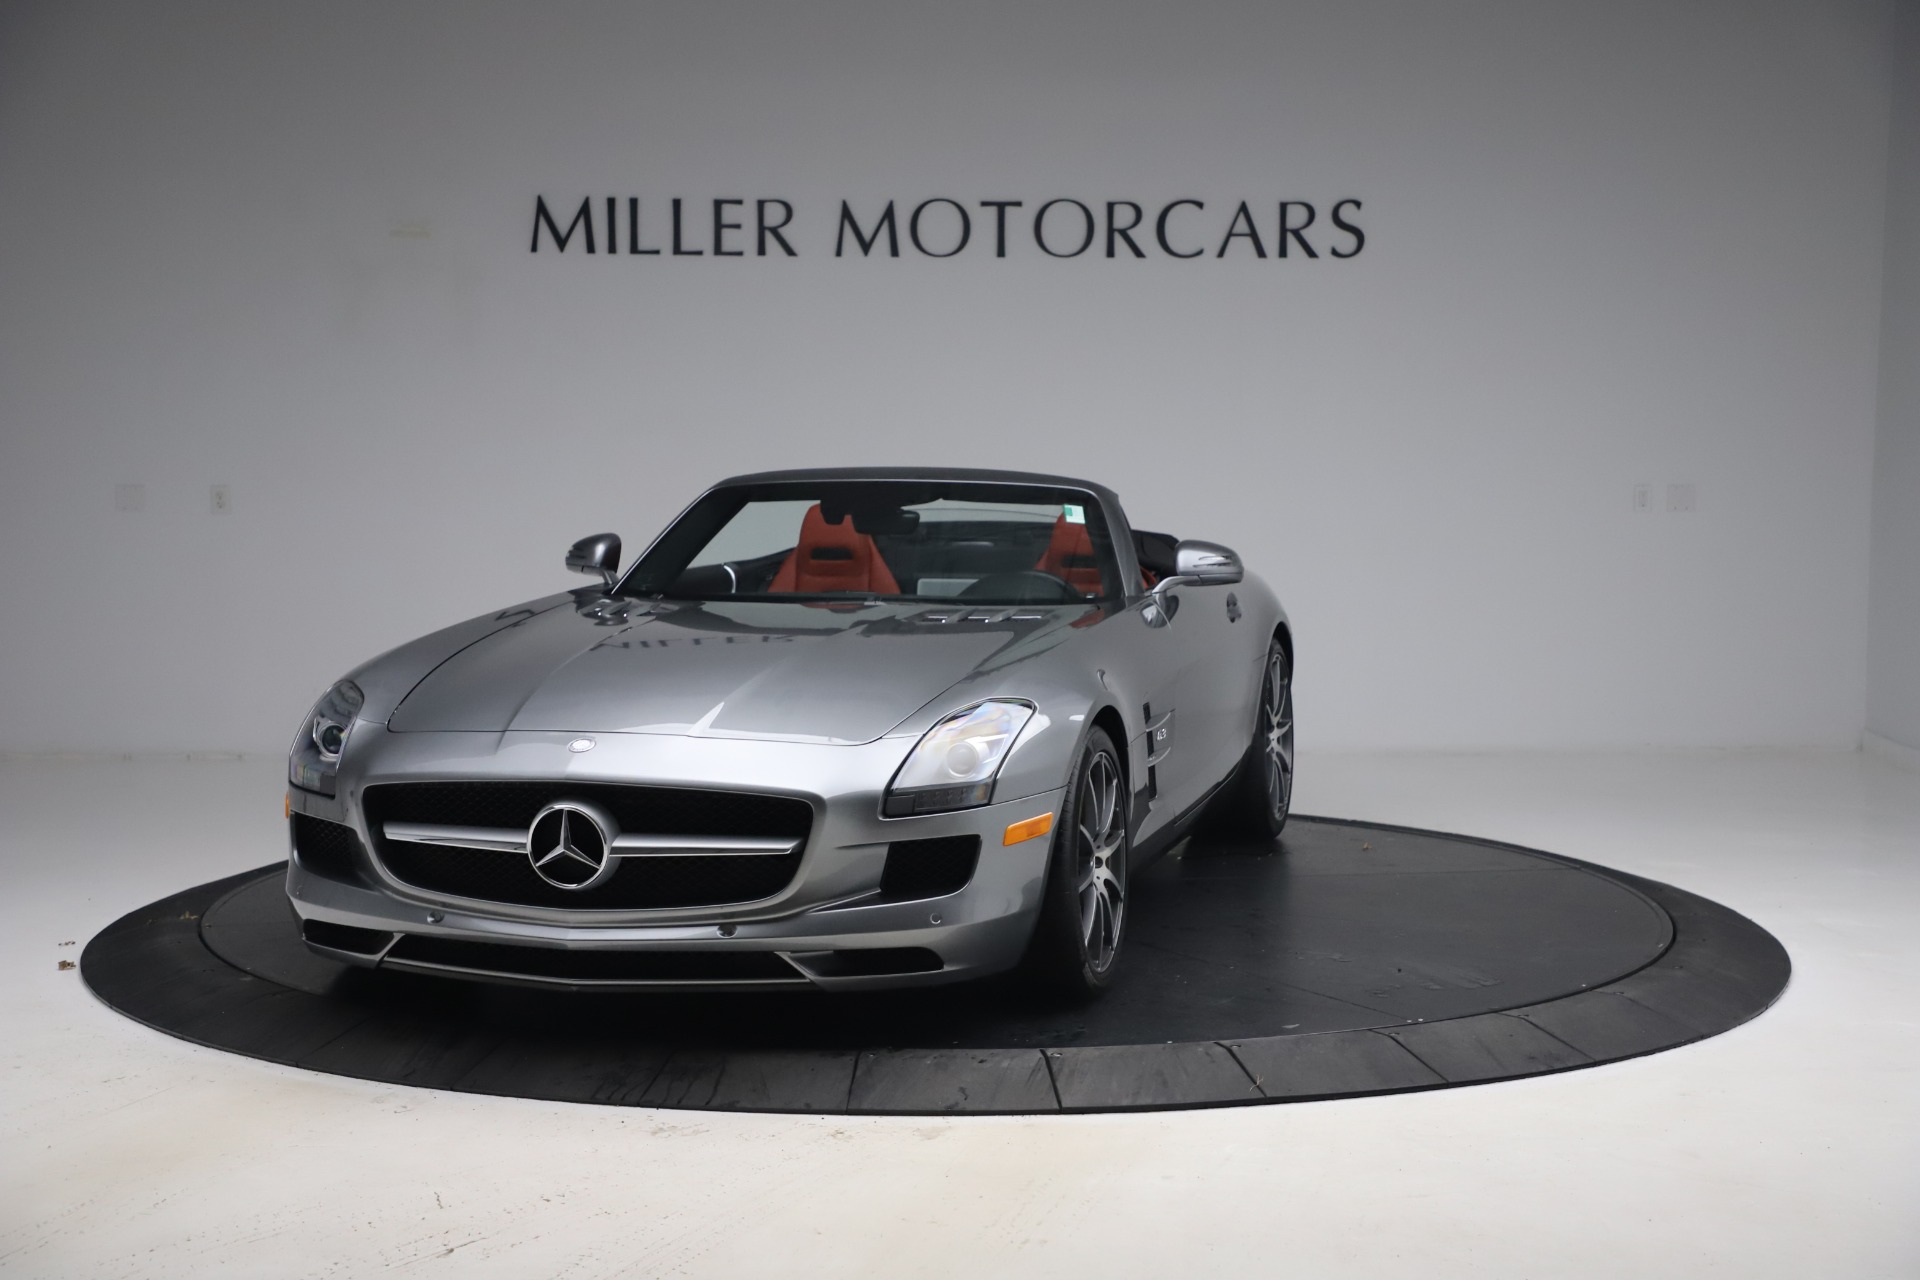 Used 2012 Mercedes-Benz SLS AMG  For Sale In Westport, CT 3189_p19